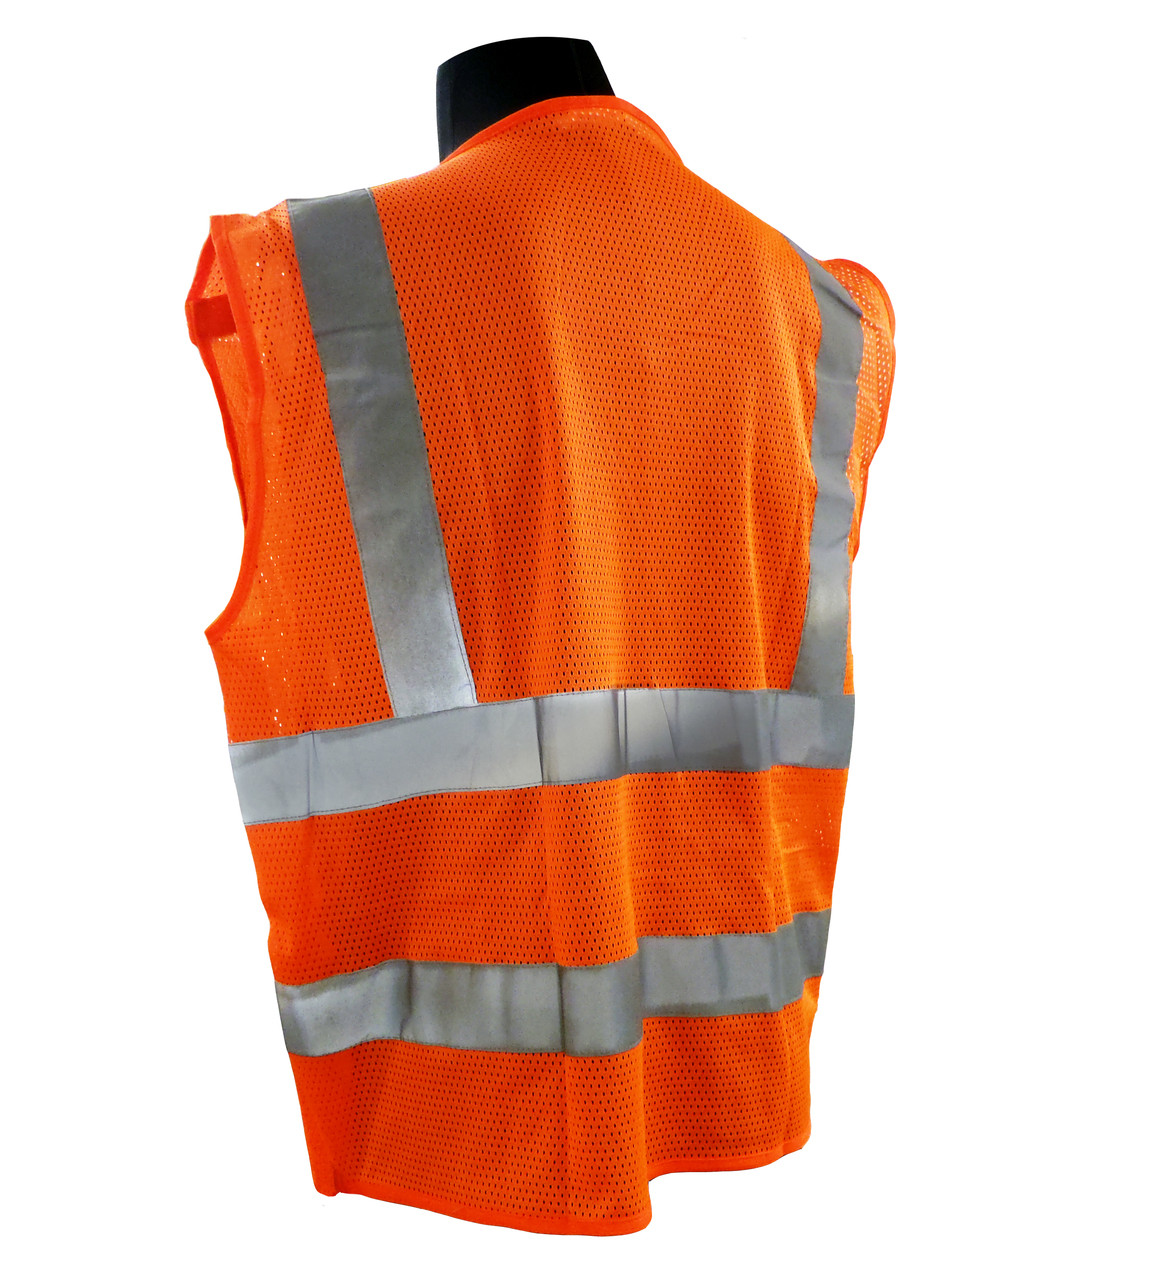 Breakaway Mesh Class 2 Safety Vests - Safety Orange Back